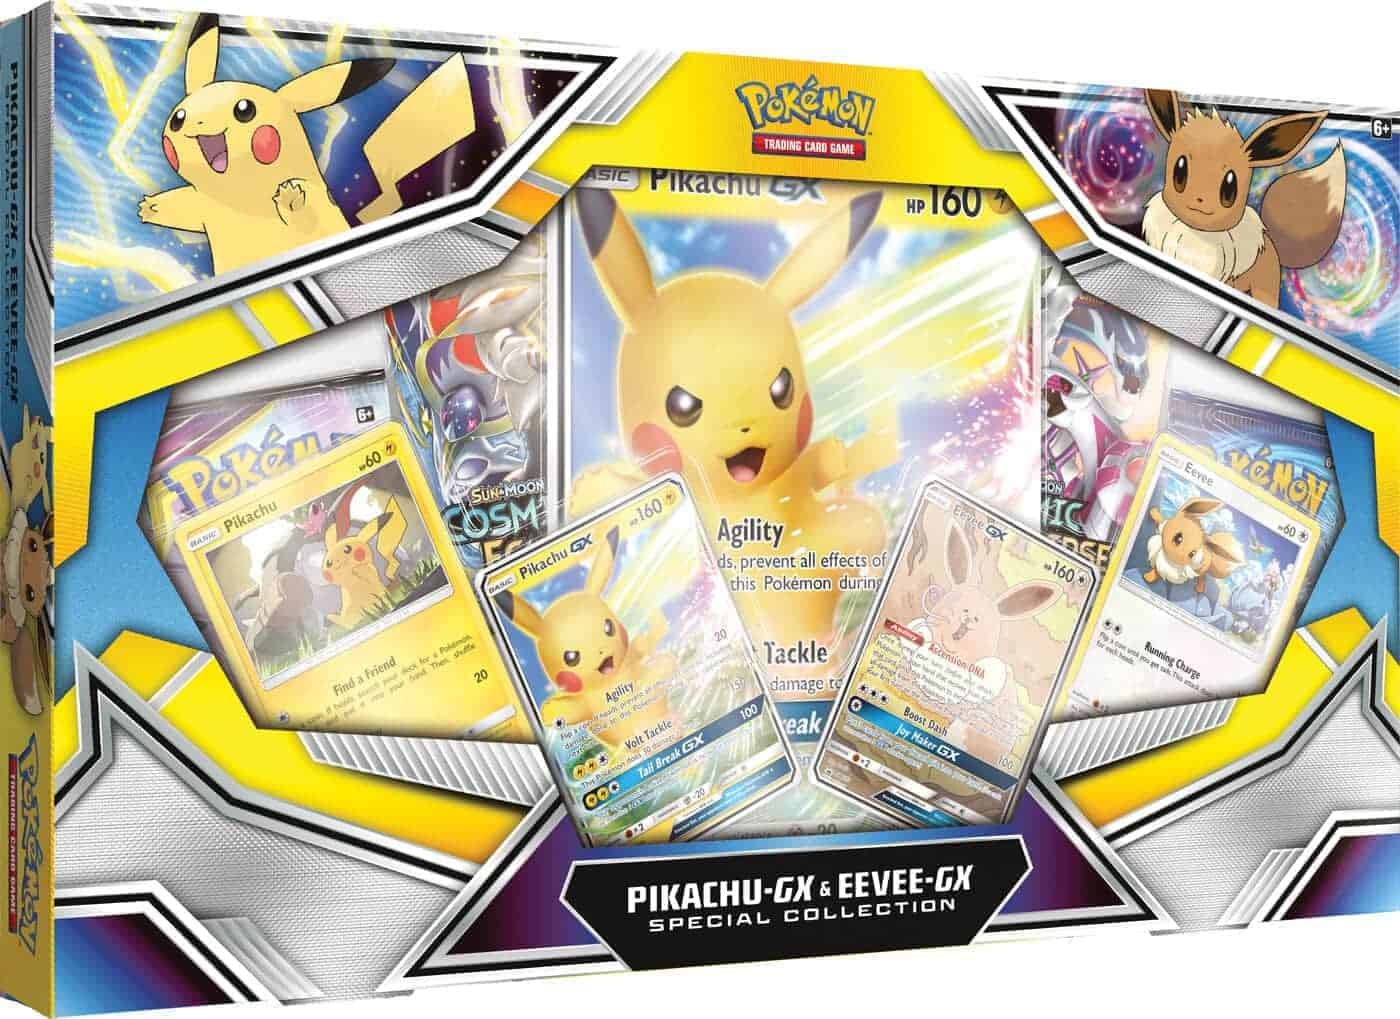 Pikachu-Eevee-GX-Special-Collection Promo